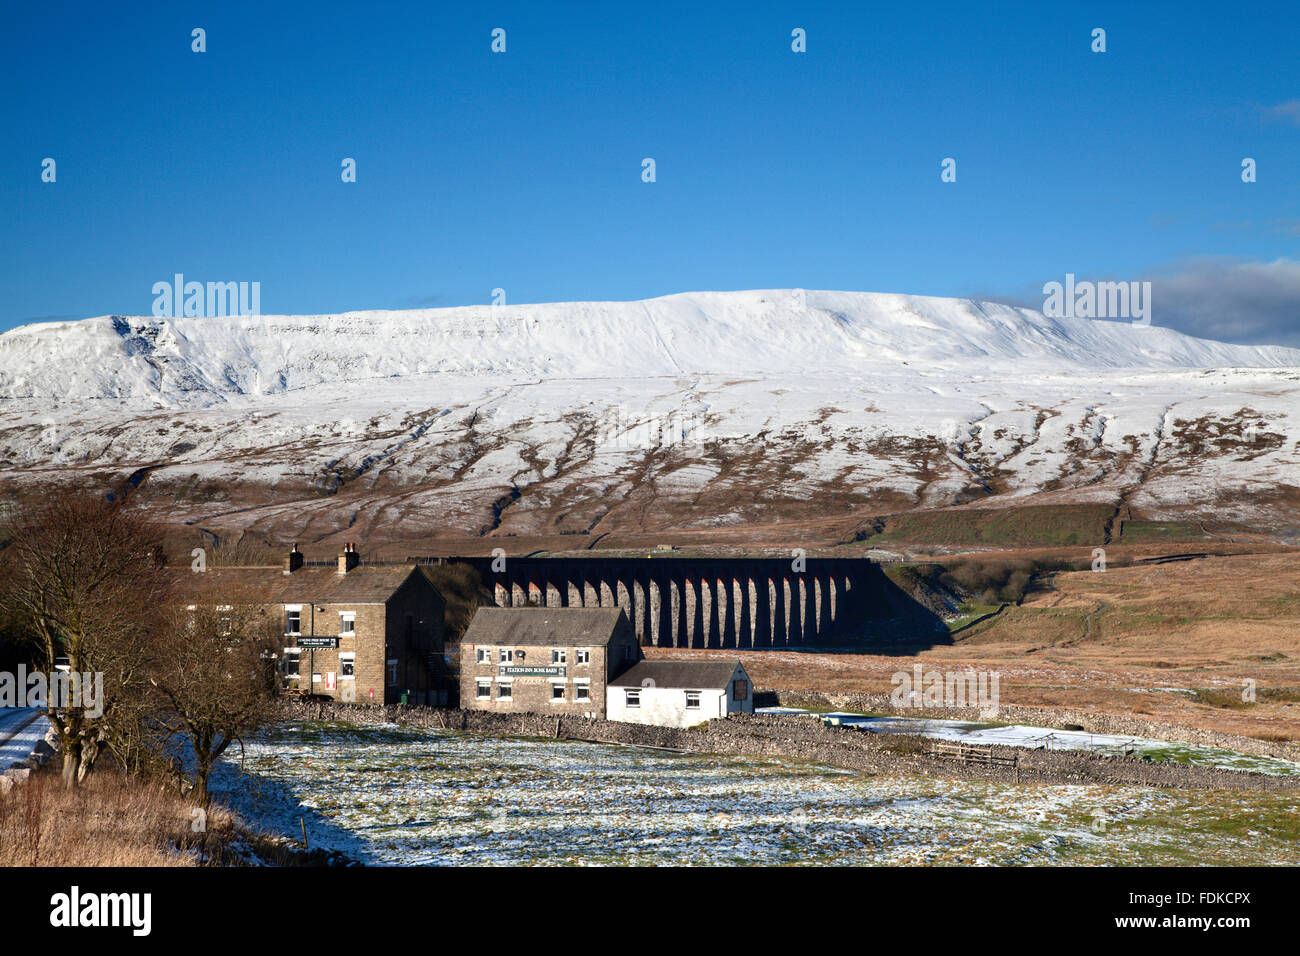 The Station Inn and Ribblehead Viaduct below the Snowcapped Peak of Whernside Ribblehead Yorkshire Dales England - Stock Image